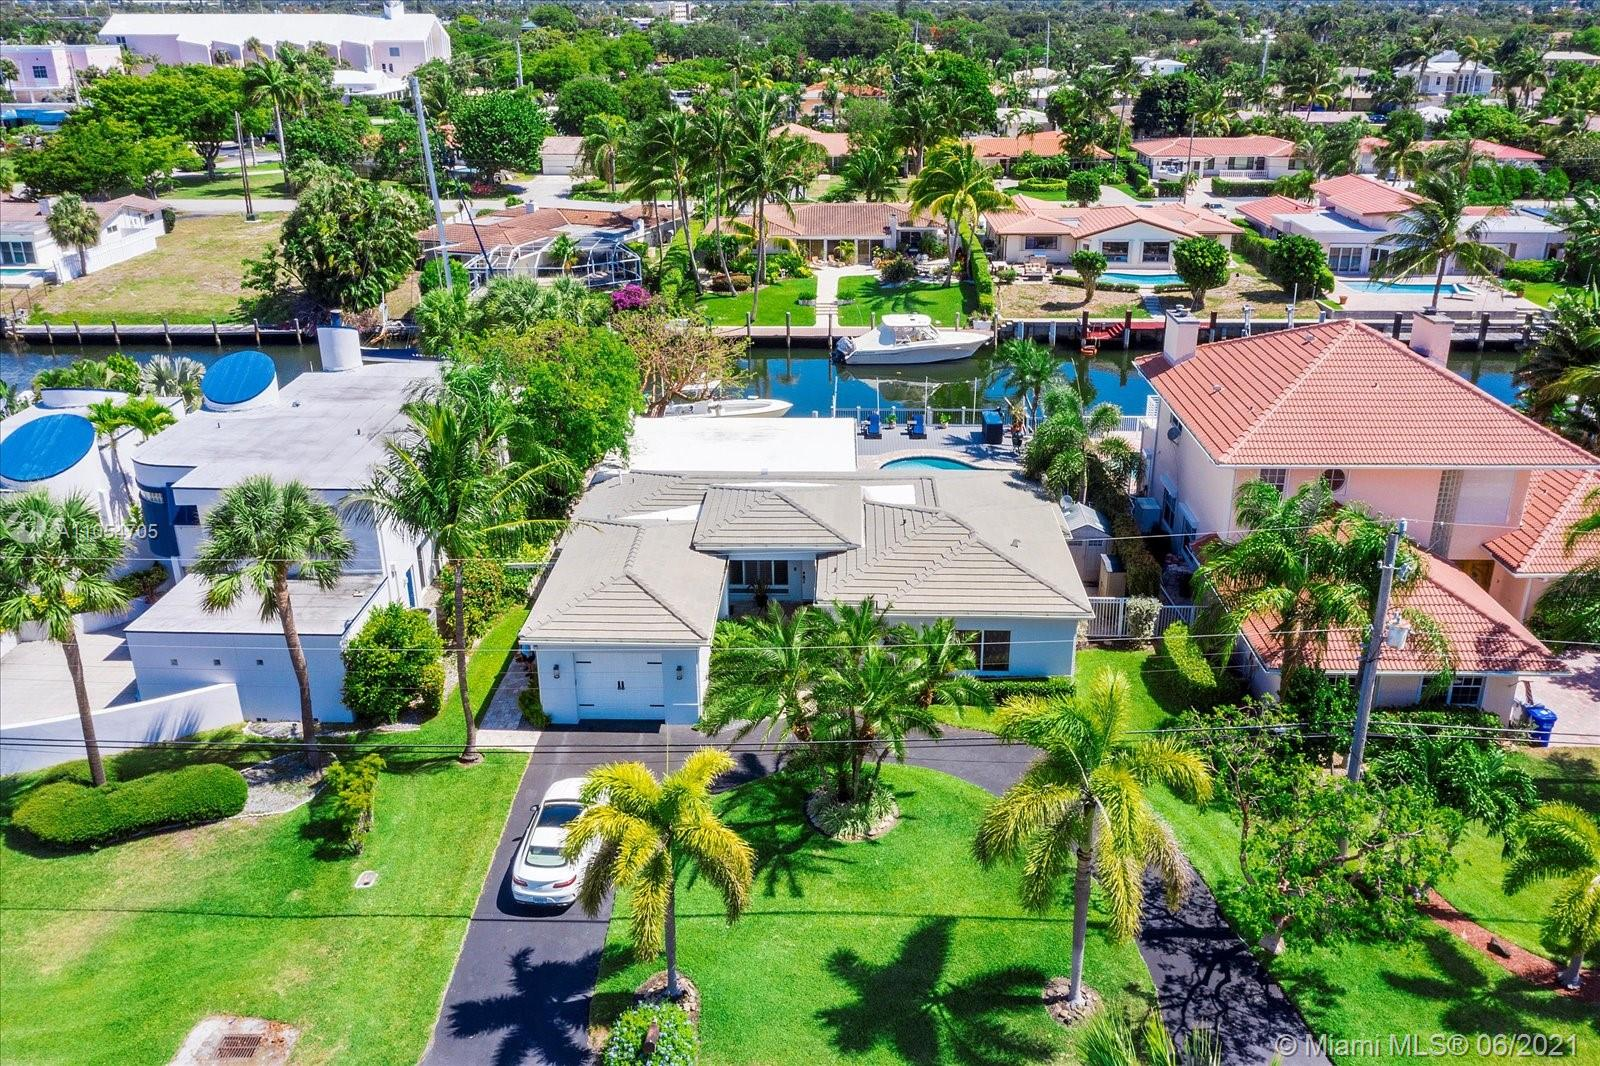 Boater's Dream Home! 87 feet of waterfront on one the best canals south of the Inlet! Tropical Paradise! Private dock with 14000 LB Boat Lift , 35 AMP electric and water service , sea water for the bait! NO BRIDGES! Direct ocean access in less than 10 minutes. This house has it all... South Florida Prime Location . Completely remodeled! This spectacular direct waterfront home is situated on a spacious lot with plenty of room. Perfectly tropical South Florida location is a boater's dream ! All on one level, this home offers an Upgrades throughout with hurricane impact windows and doors. Amazing backyard with pool and spa and gorgeous water views. Bring your offers , this house will not last! Ready to move in! PLEASE CALL LINA FOR SHOWINGS (954)612-0236